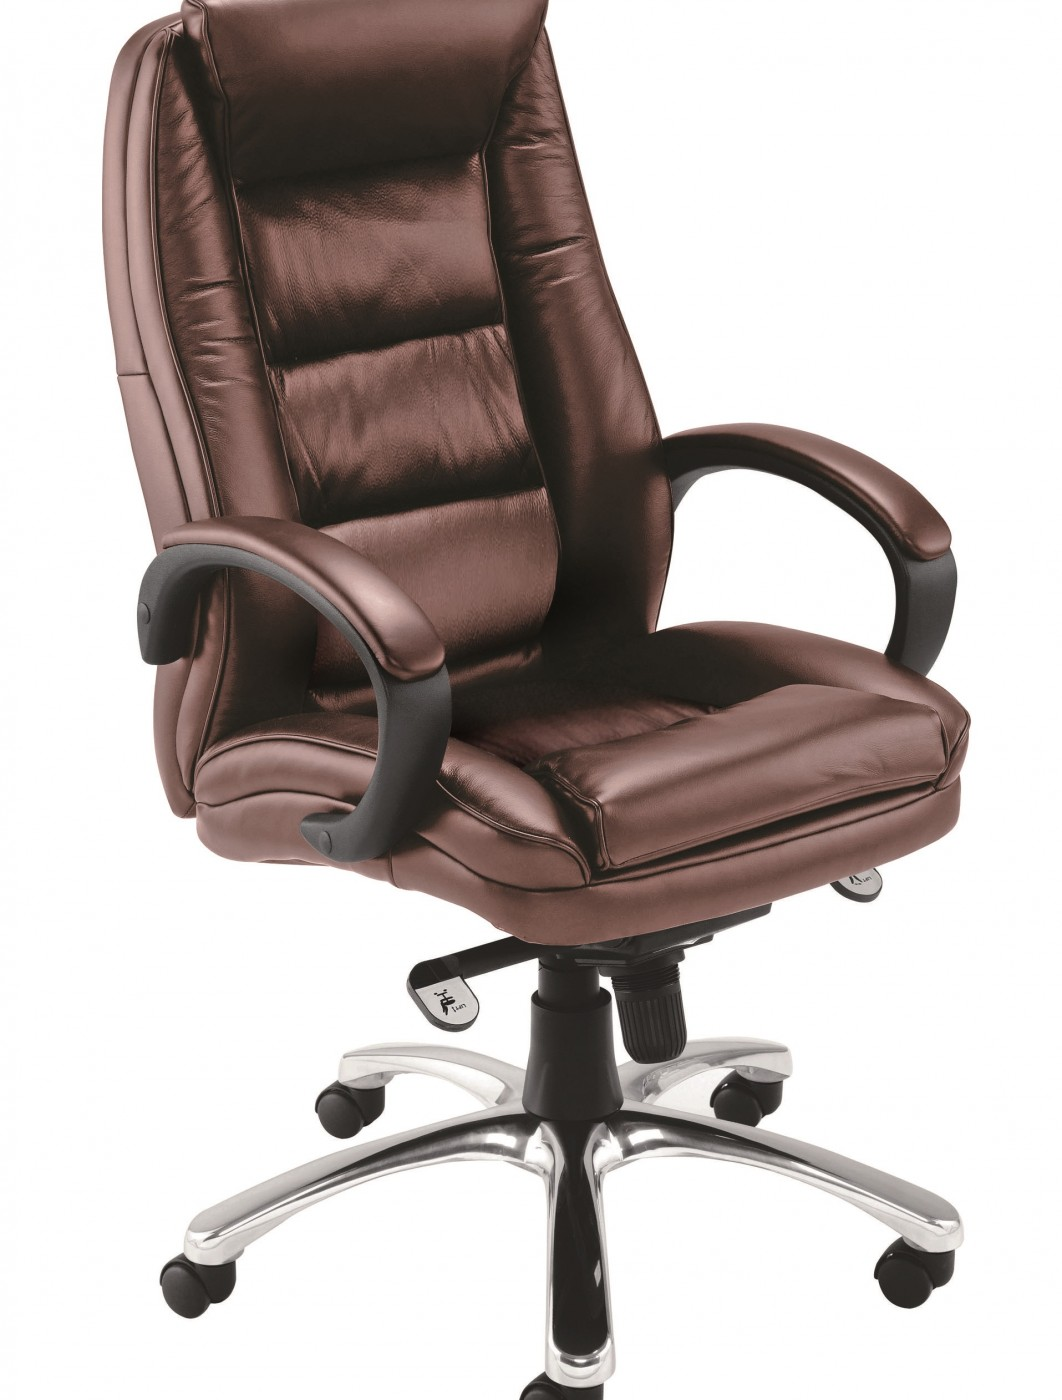 Leather Executive Chair Montana Executive Leather Office Chair Ch0240 121 Office